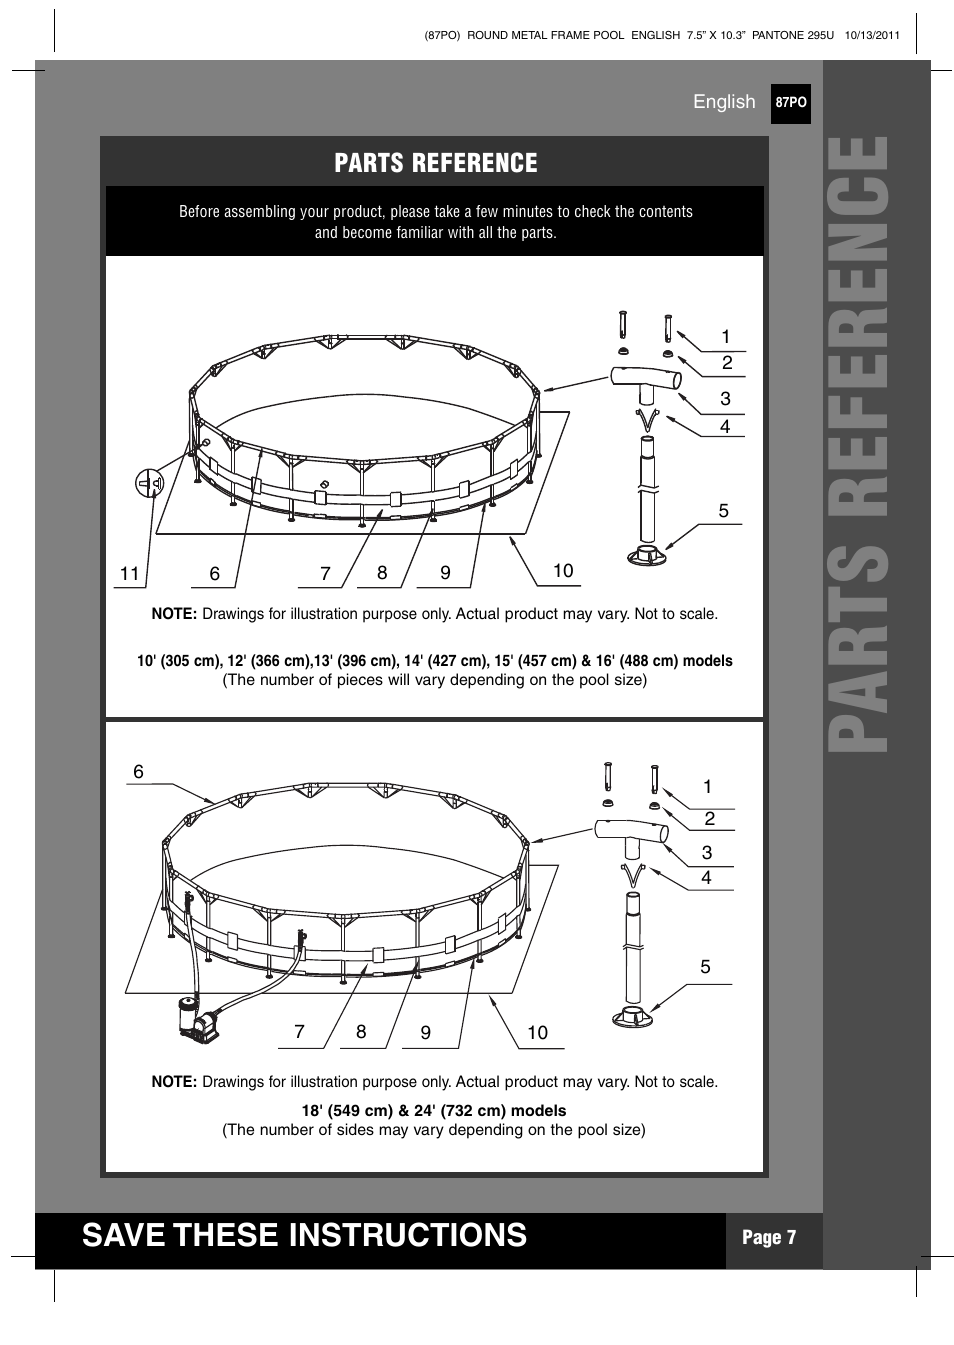 Intex 18 Ft X 48 In Metal Frame Pool User Manual Page 7